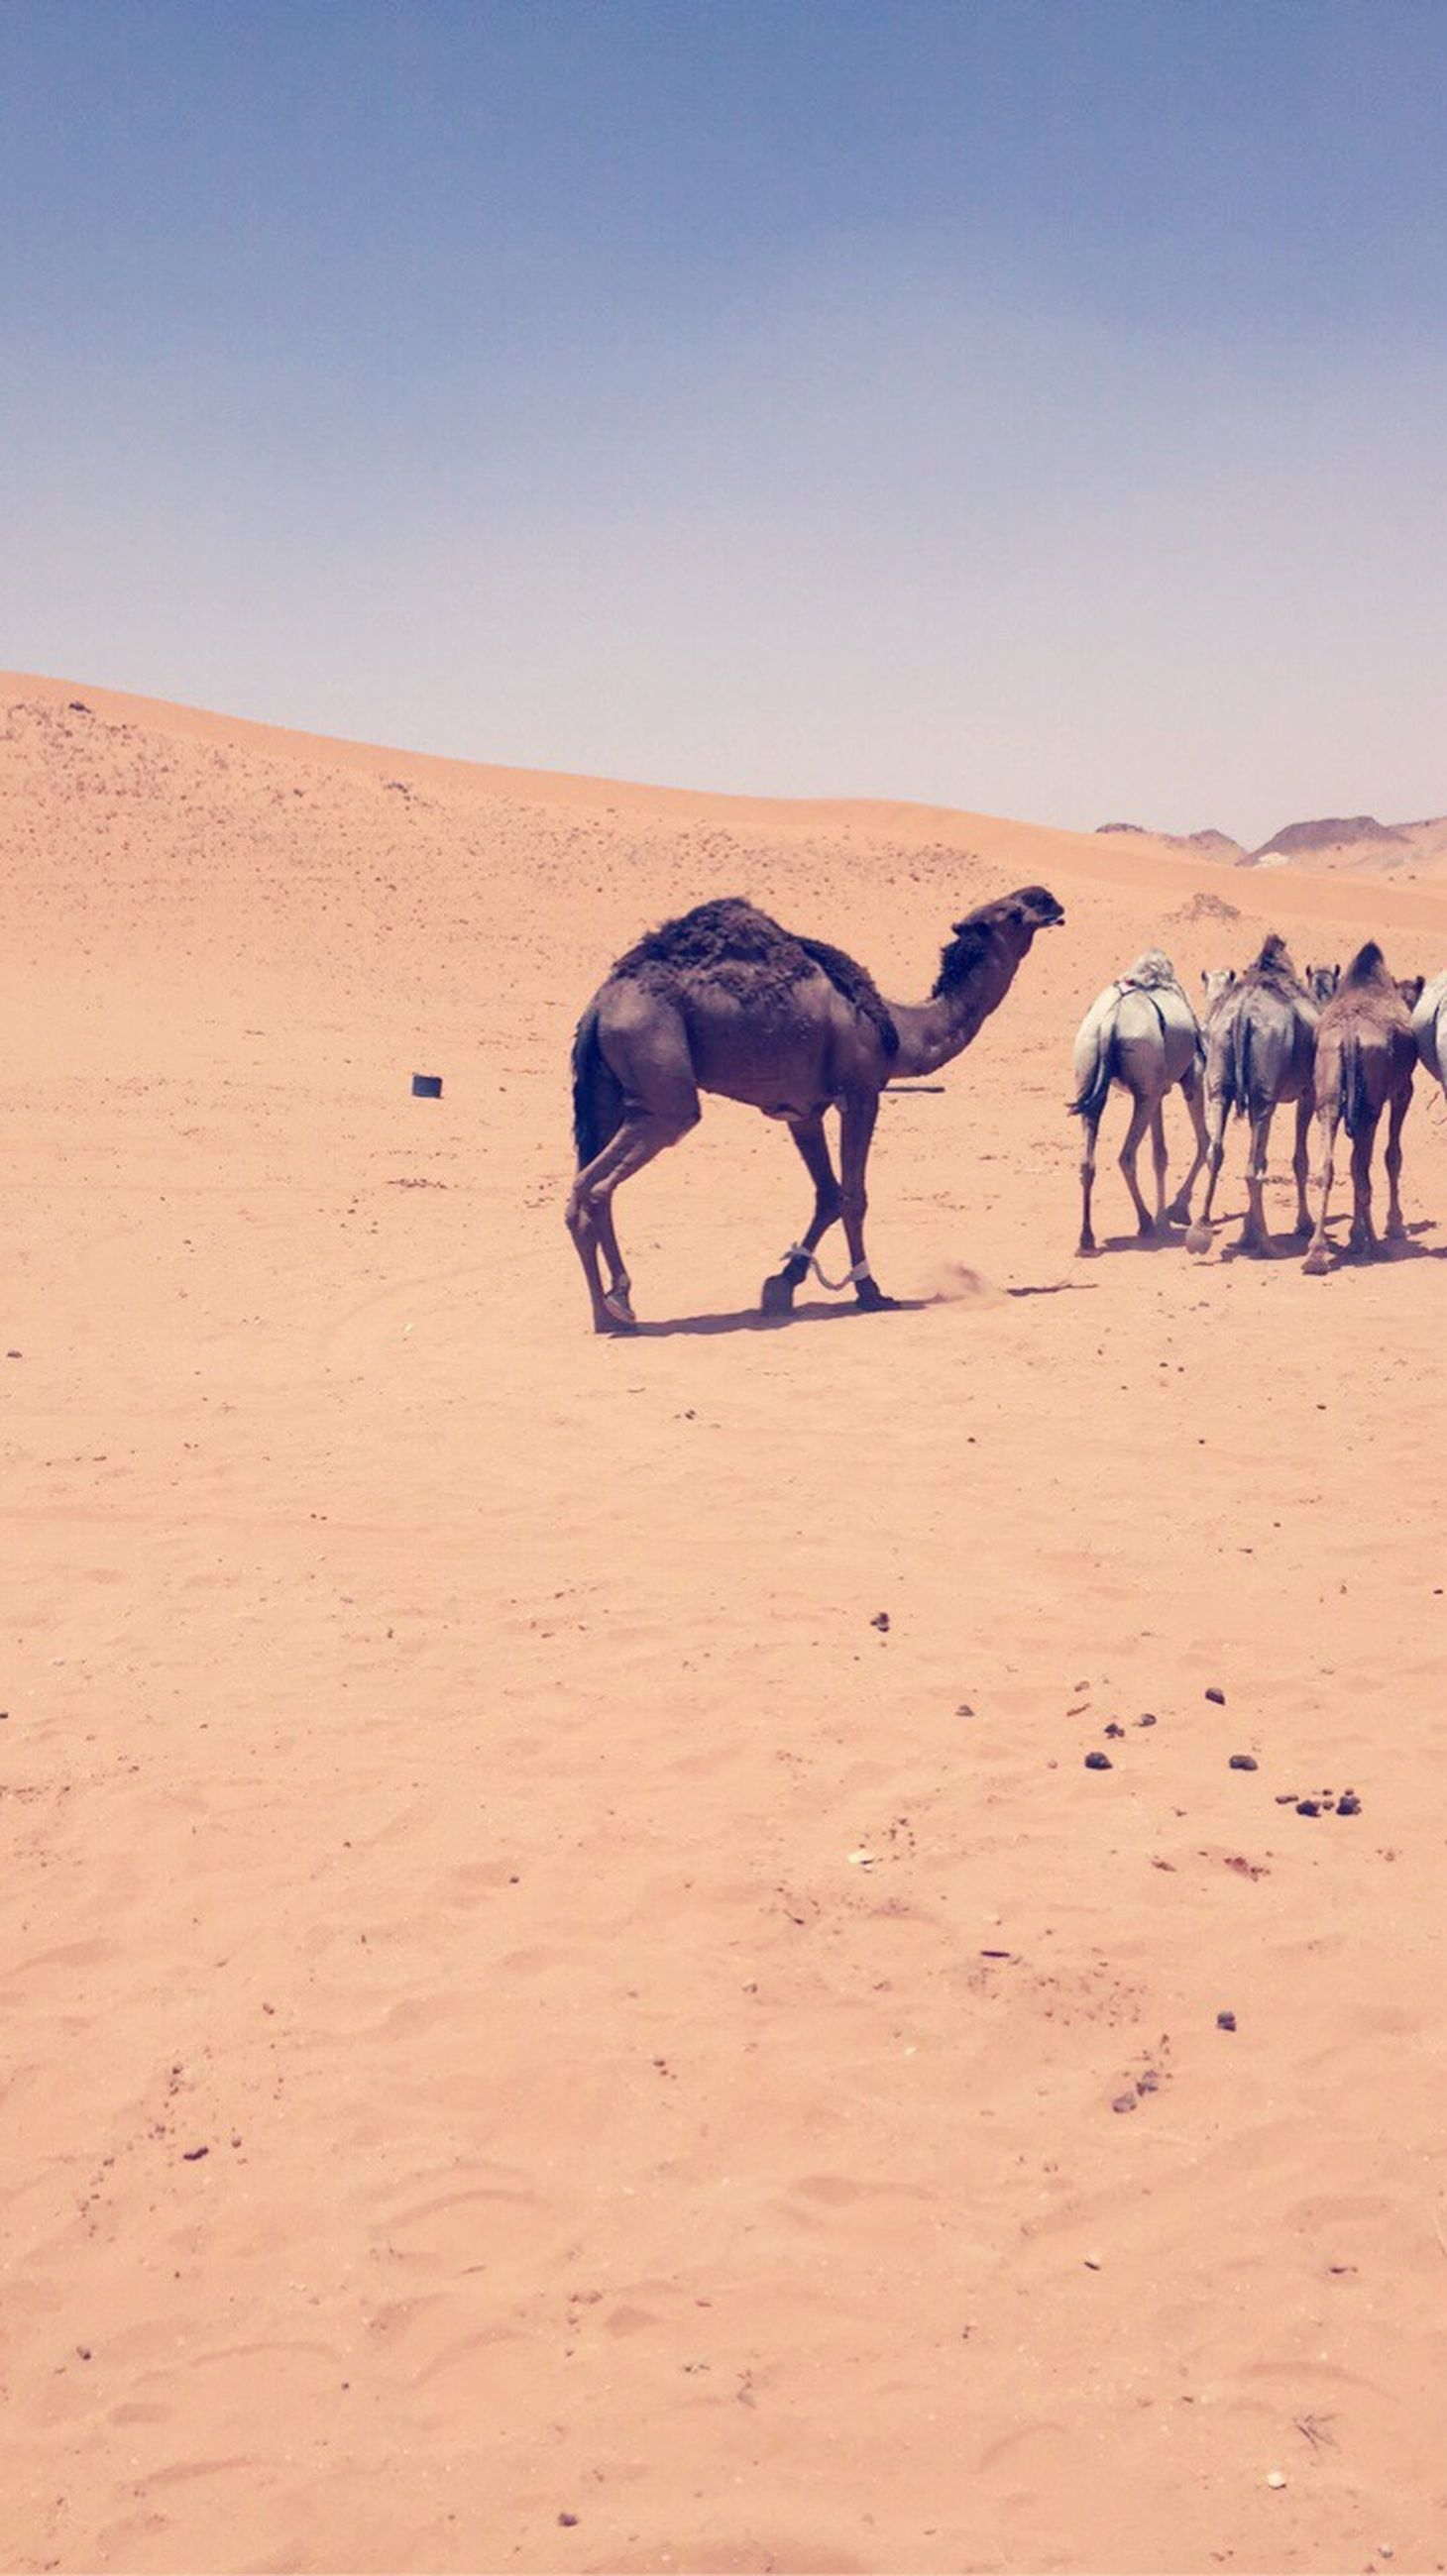 desert, sand, animal themes, mammal, nature, clear sky, outdoors, domestic animals, arid climate, animals in the wild, landscape, sand dune, sky, day, no people, safari animals, beauty in nature